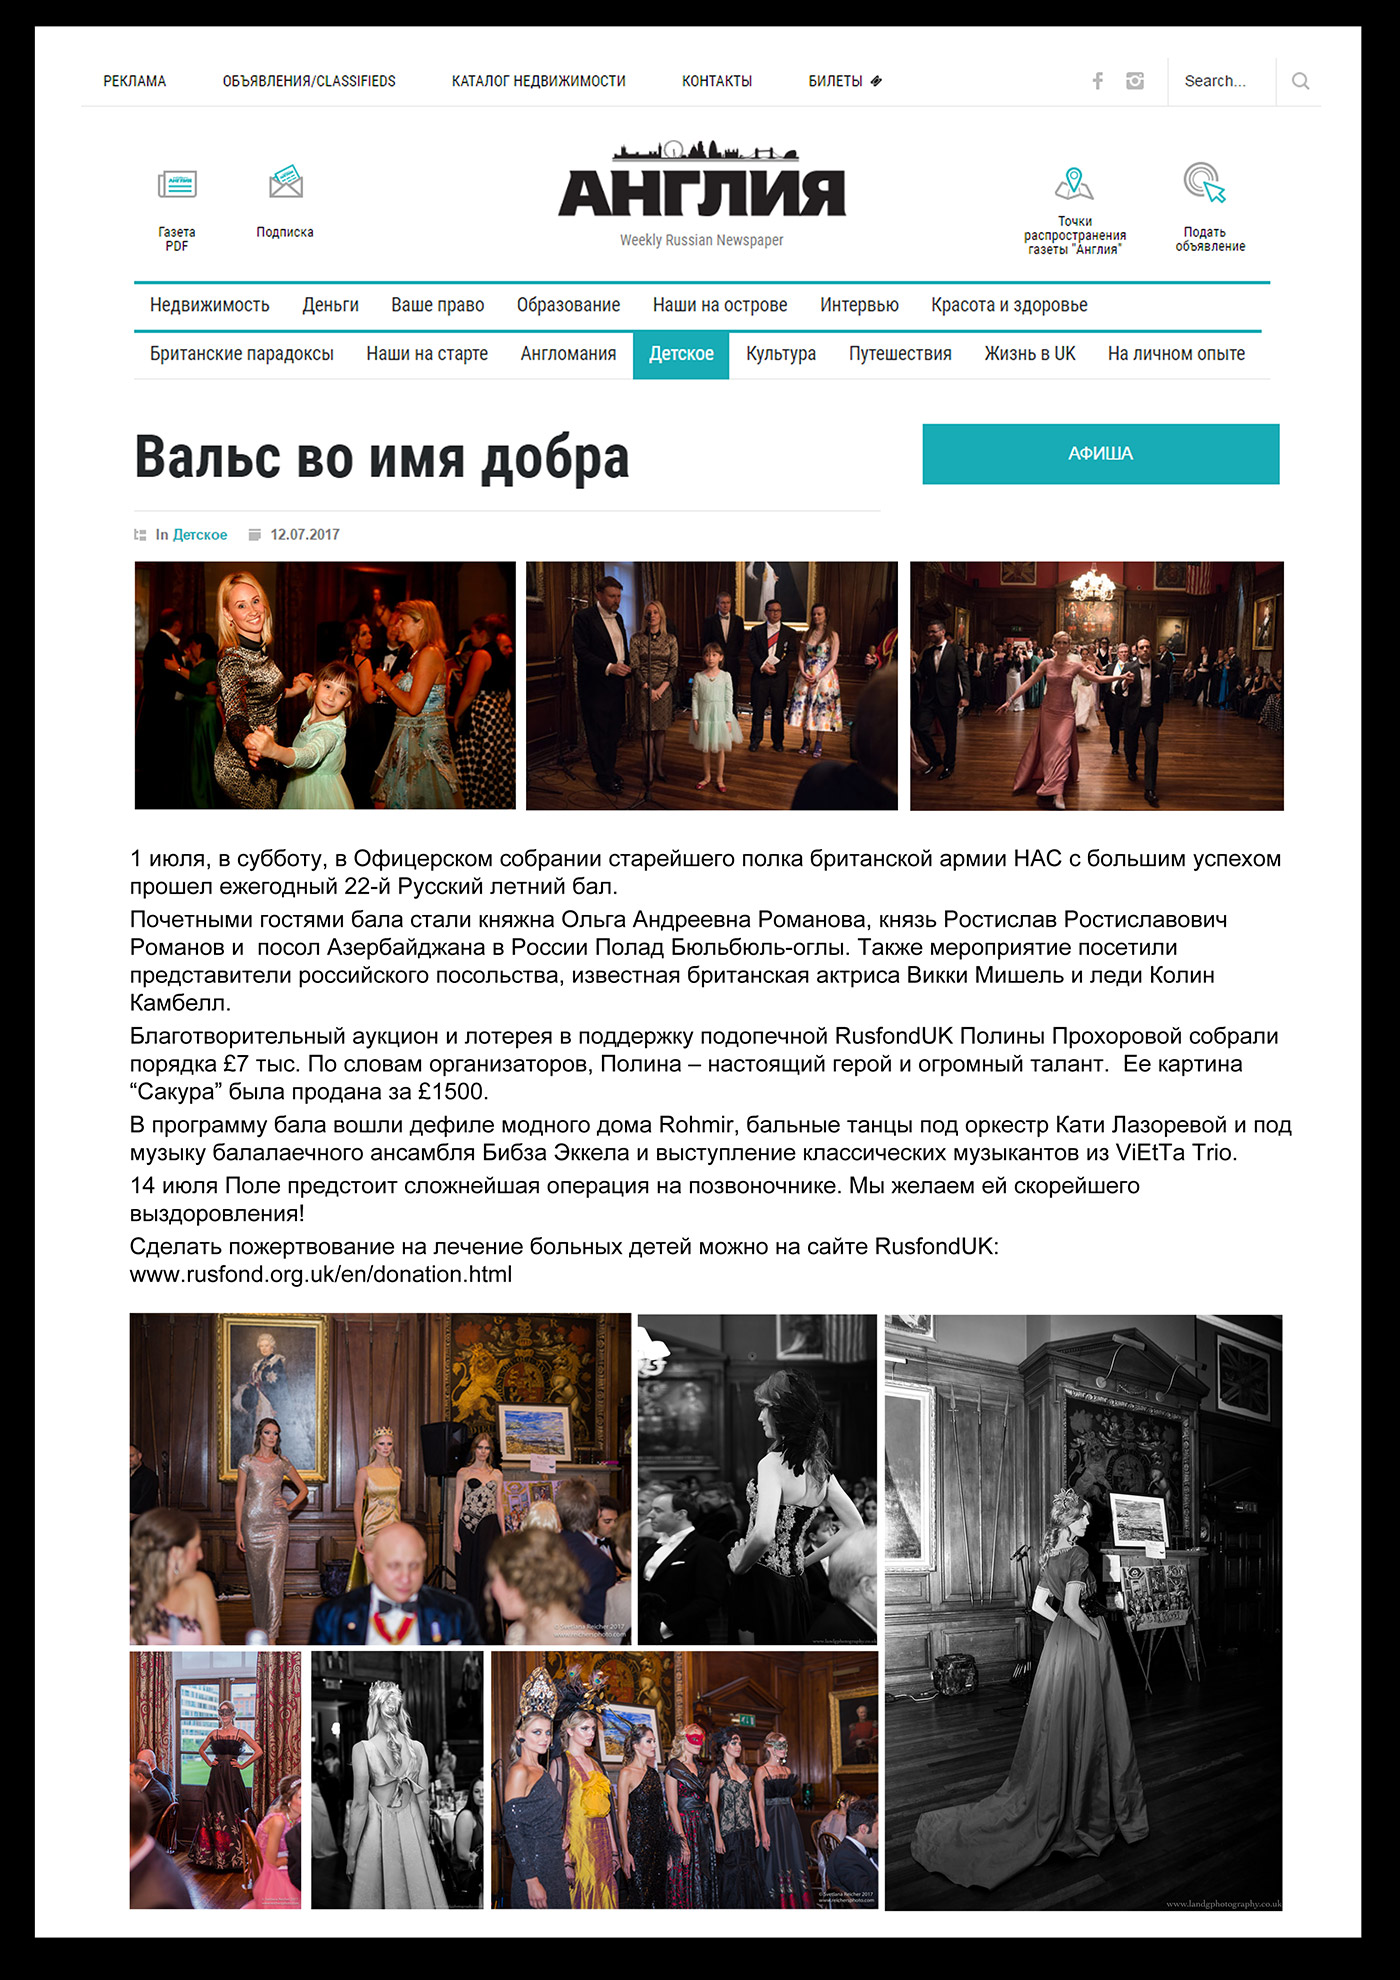 ROHMIR-RUSSIAN-SUMMER-BALL-ARTICLE